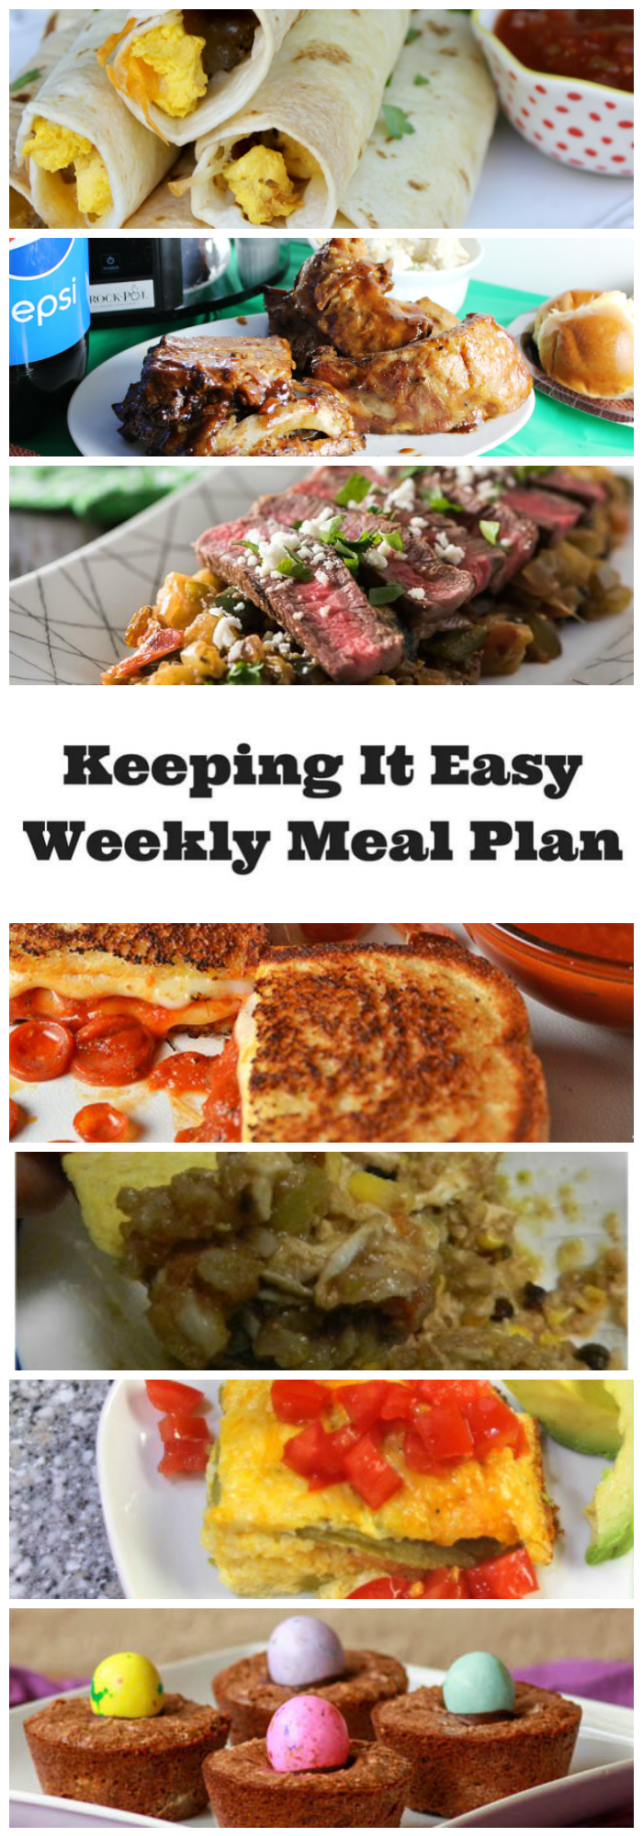 Easy Weekly Meal Plan #11 from My Fearless Kitchen. This week's meal plan includes Baked Sausage, Egg, & Cheese Breakfast Taquitos, Spicy Grilled Steak Caponata, Chili Relleno Casserole with Tomatoes, Slow Cooker Pepsi Ribs, Pepperoni Pizza Grilled Cheese, Taco Chicken Bowls, and Gooey Easter Brownie Cups.